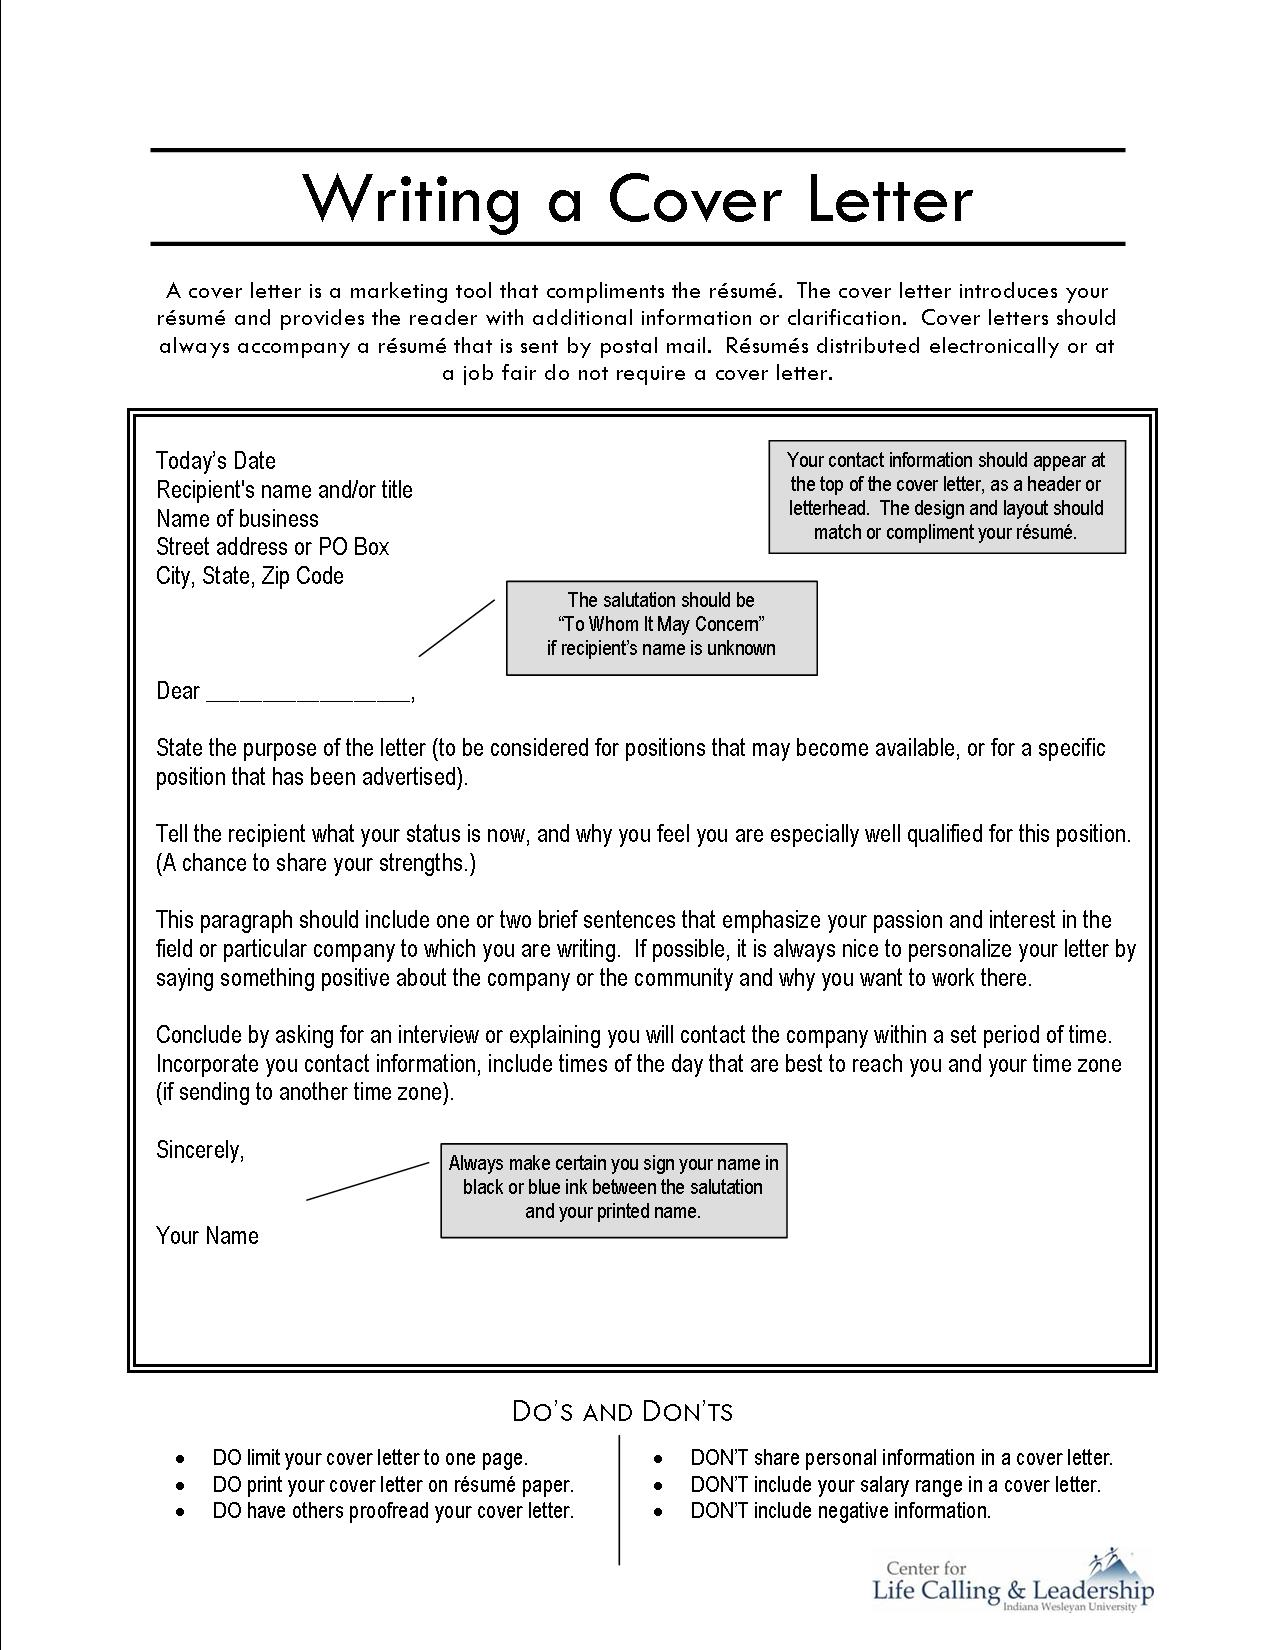 making a cover letter free cover page for resume 2016 samplebusinessresume 13620 | How To Create A Cover Letter For Resume How To Make Resume Cover Template for Resume Cover Page